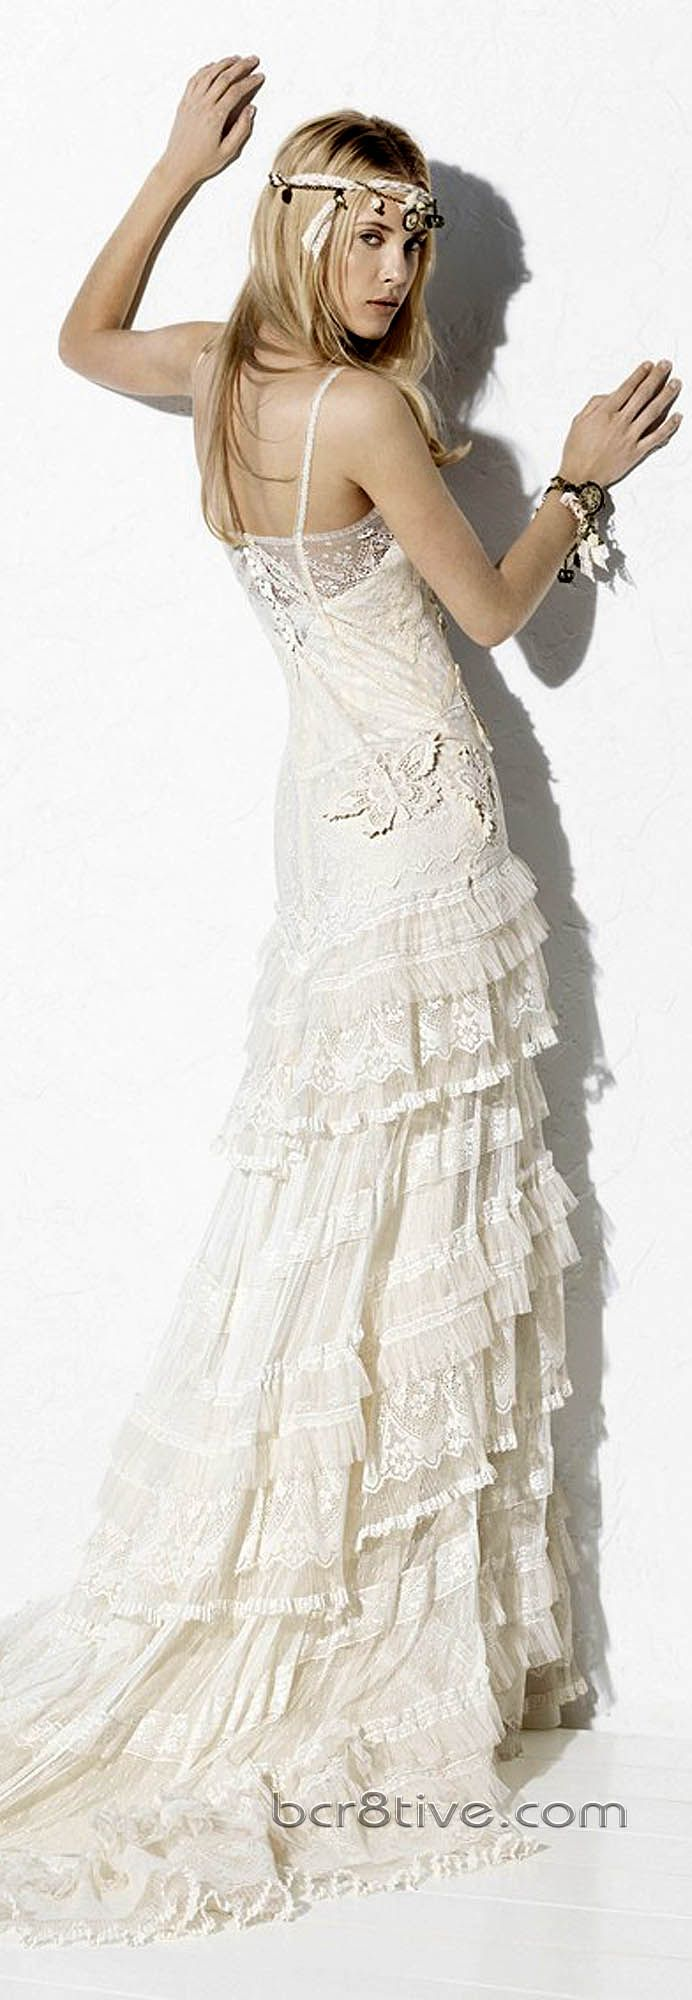 best love of laceclothing images on pinterest lace blouses